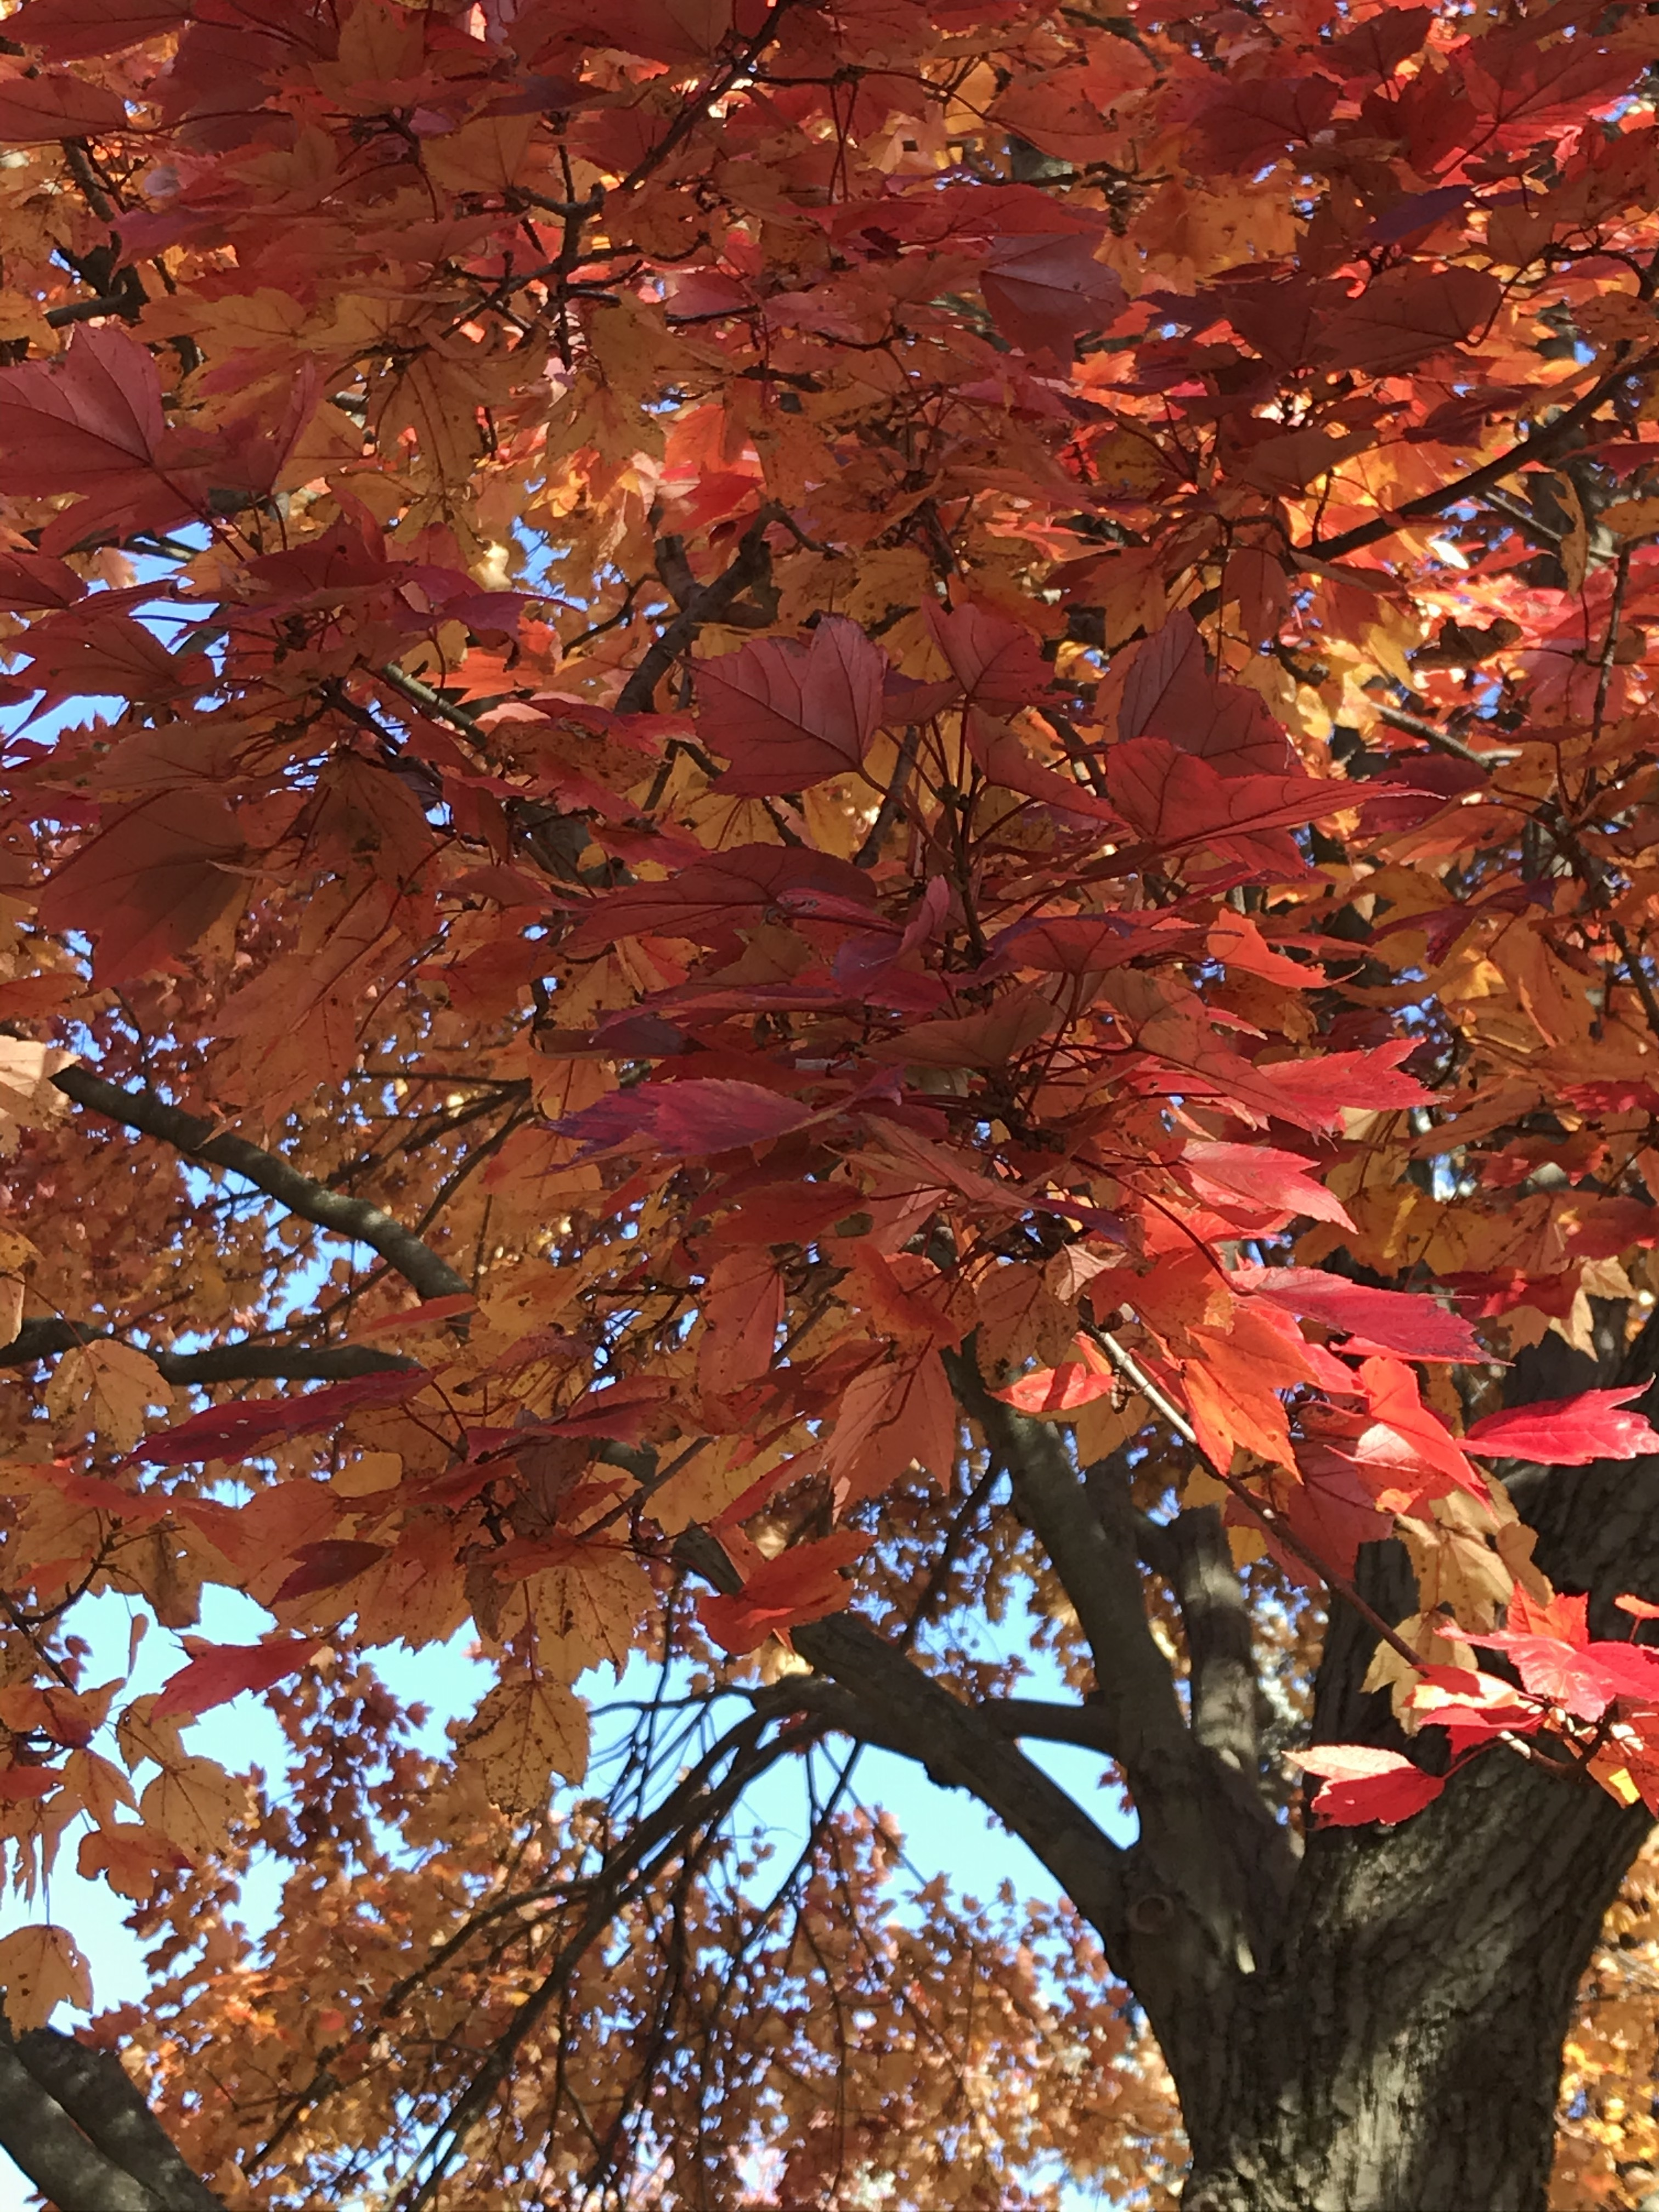 Autumn leaves picture